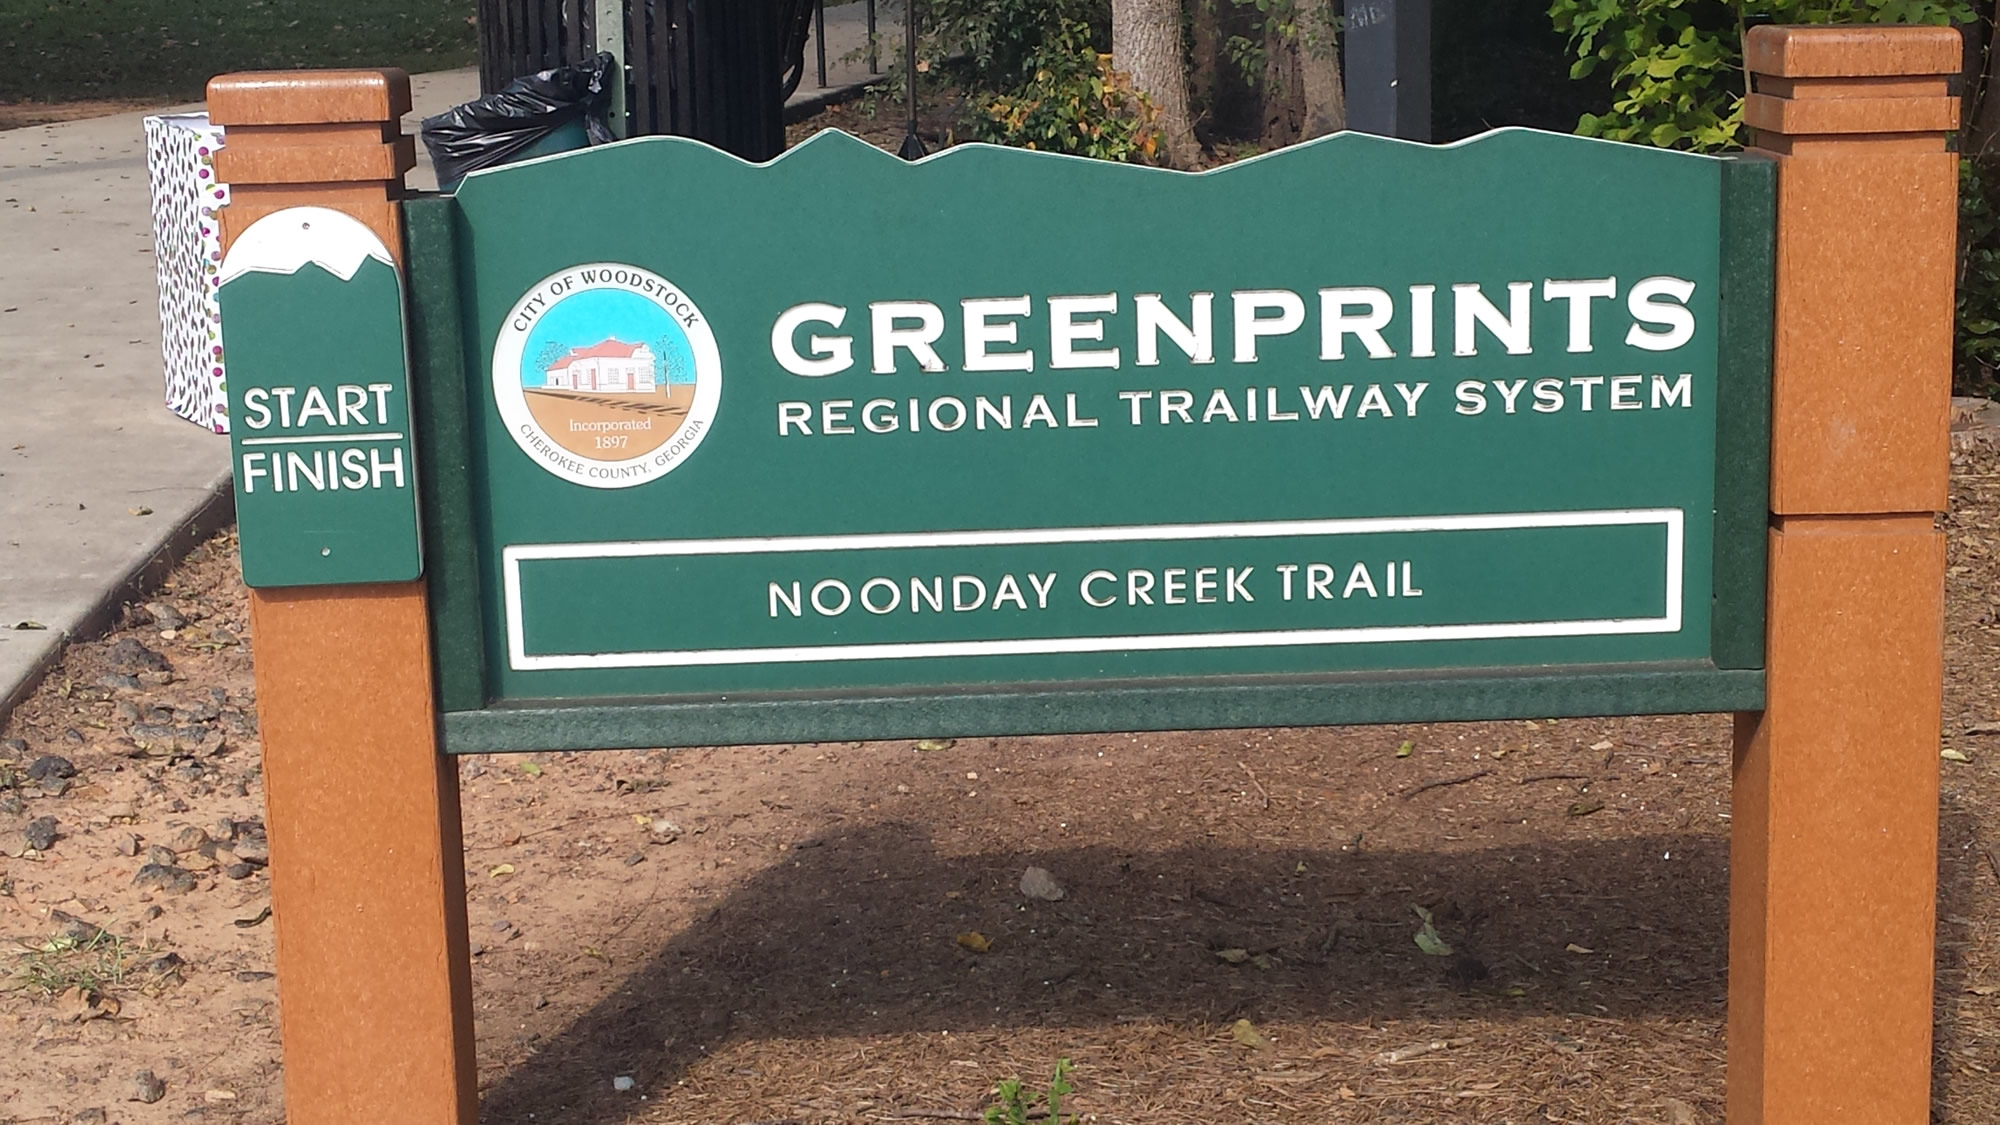 Noonday Creek Trail runs 15 miles from downtown to highway 92